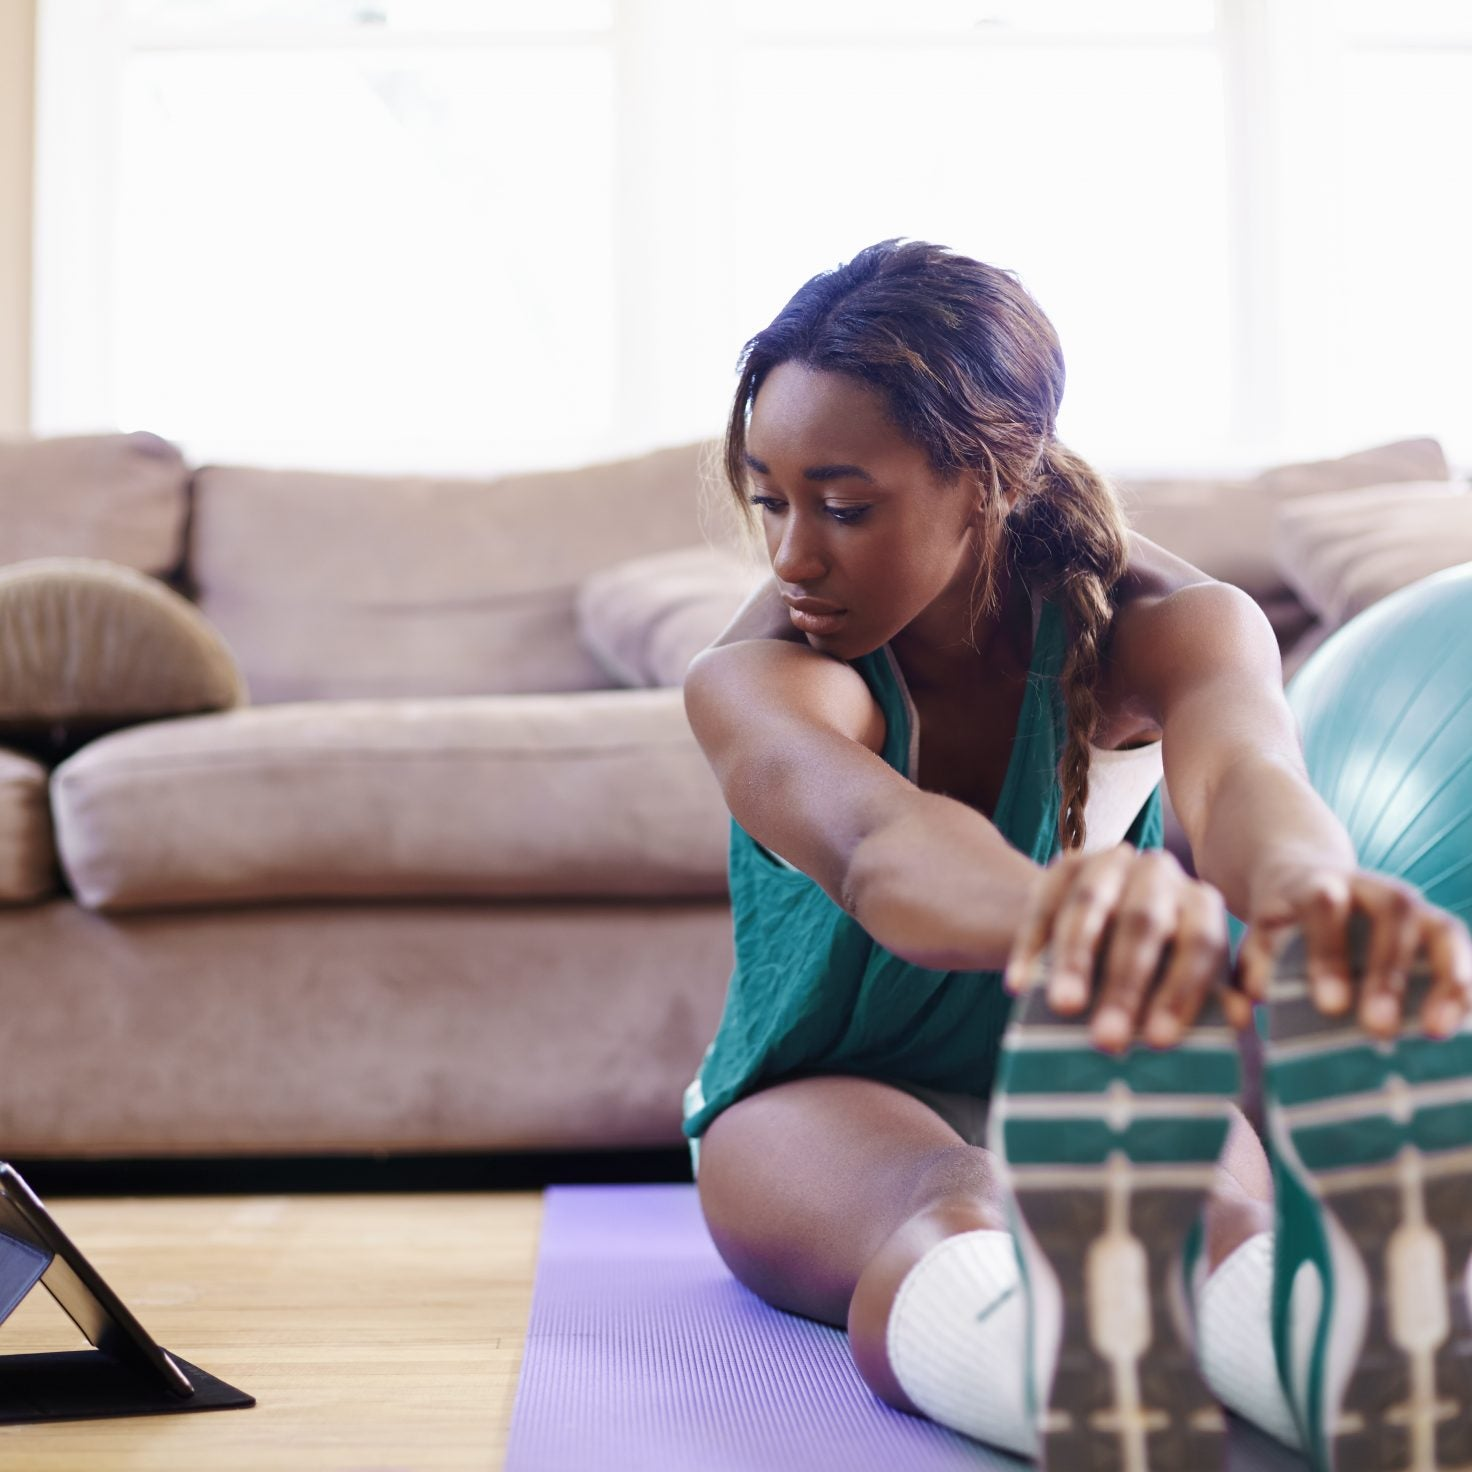 Must-Have Home Workout Equipment